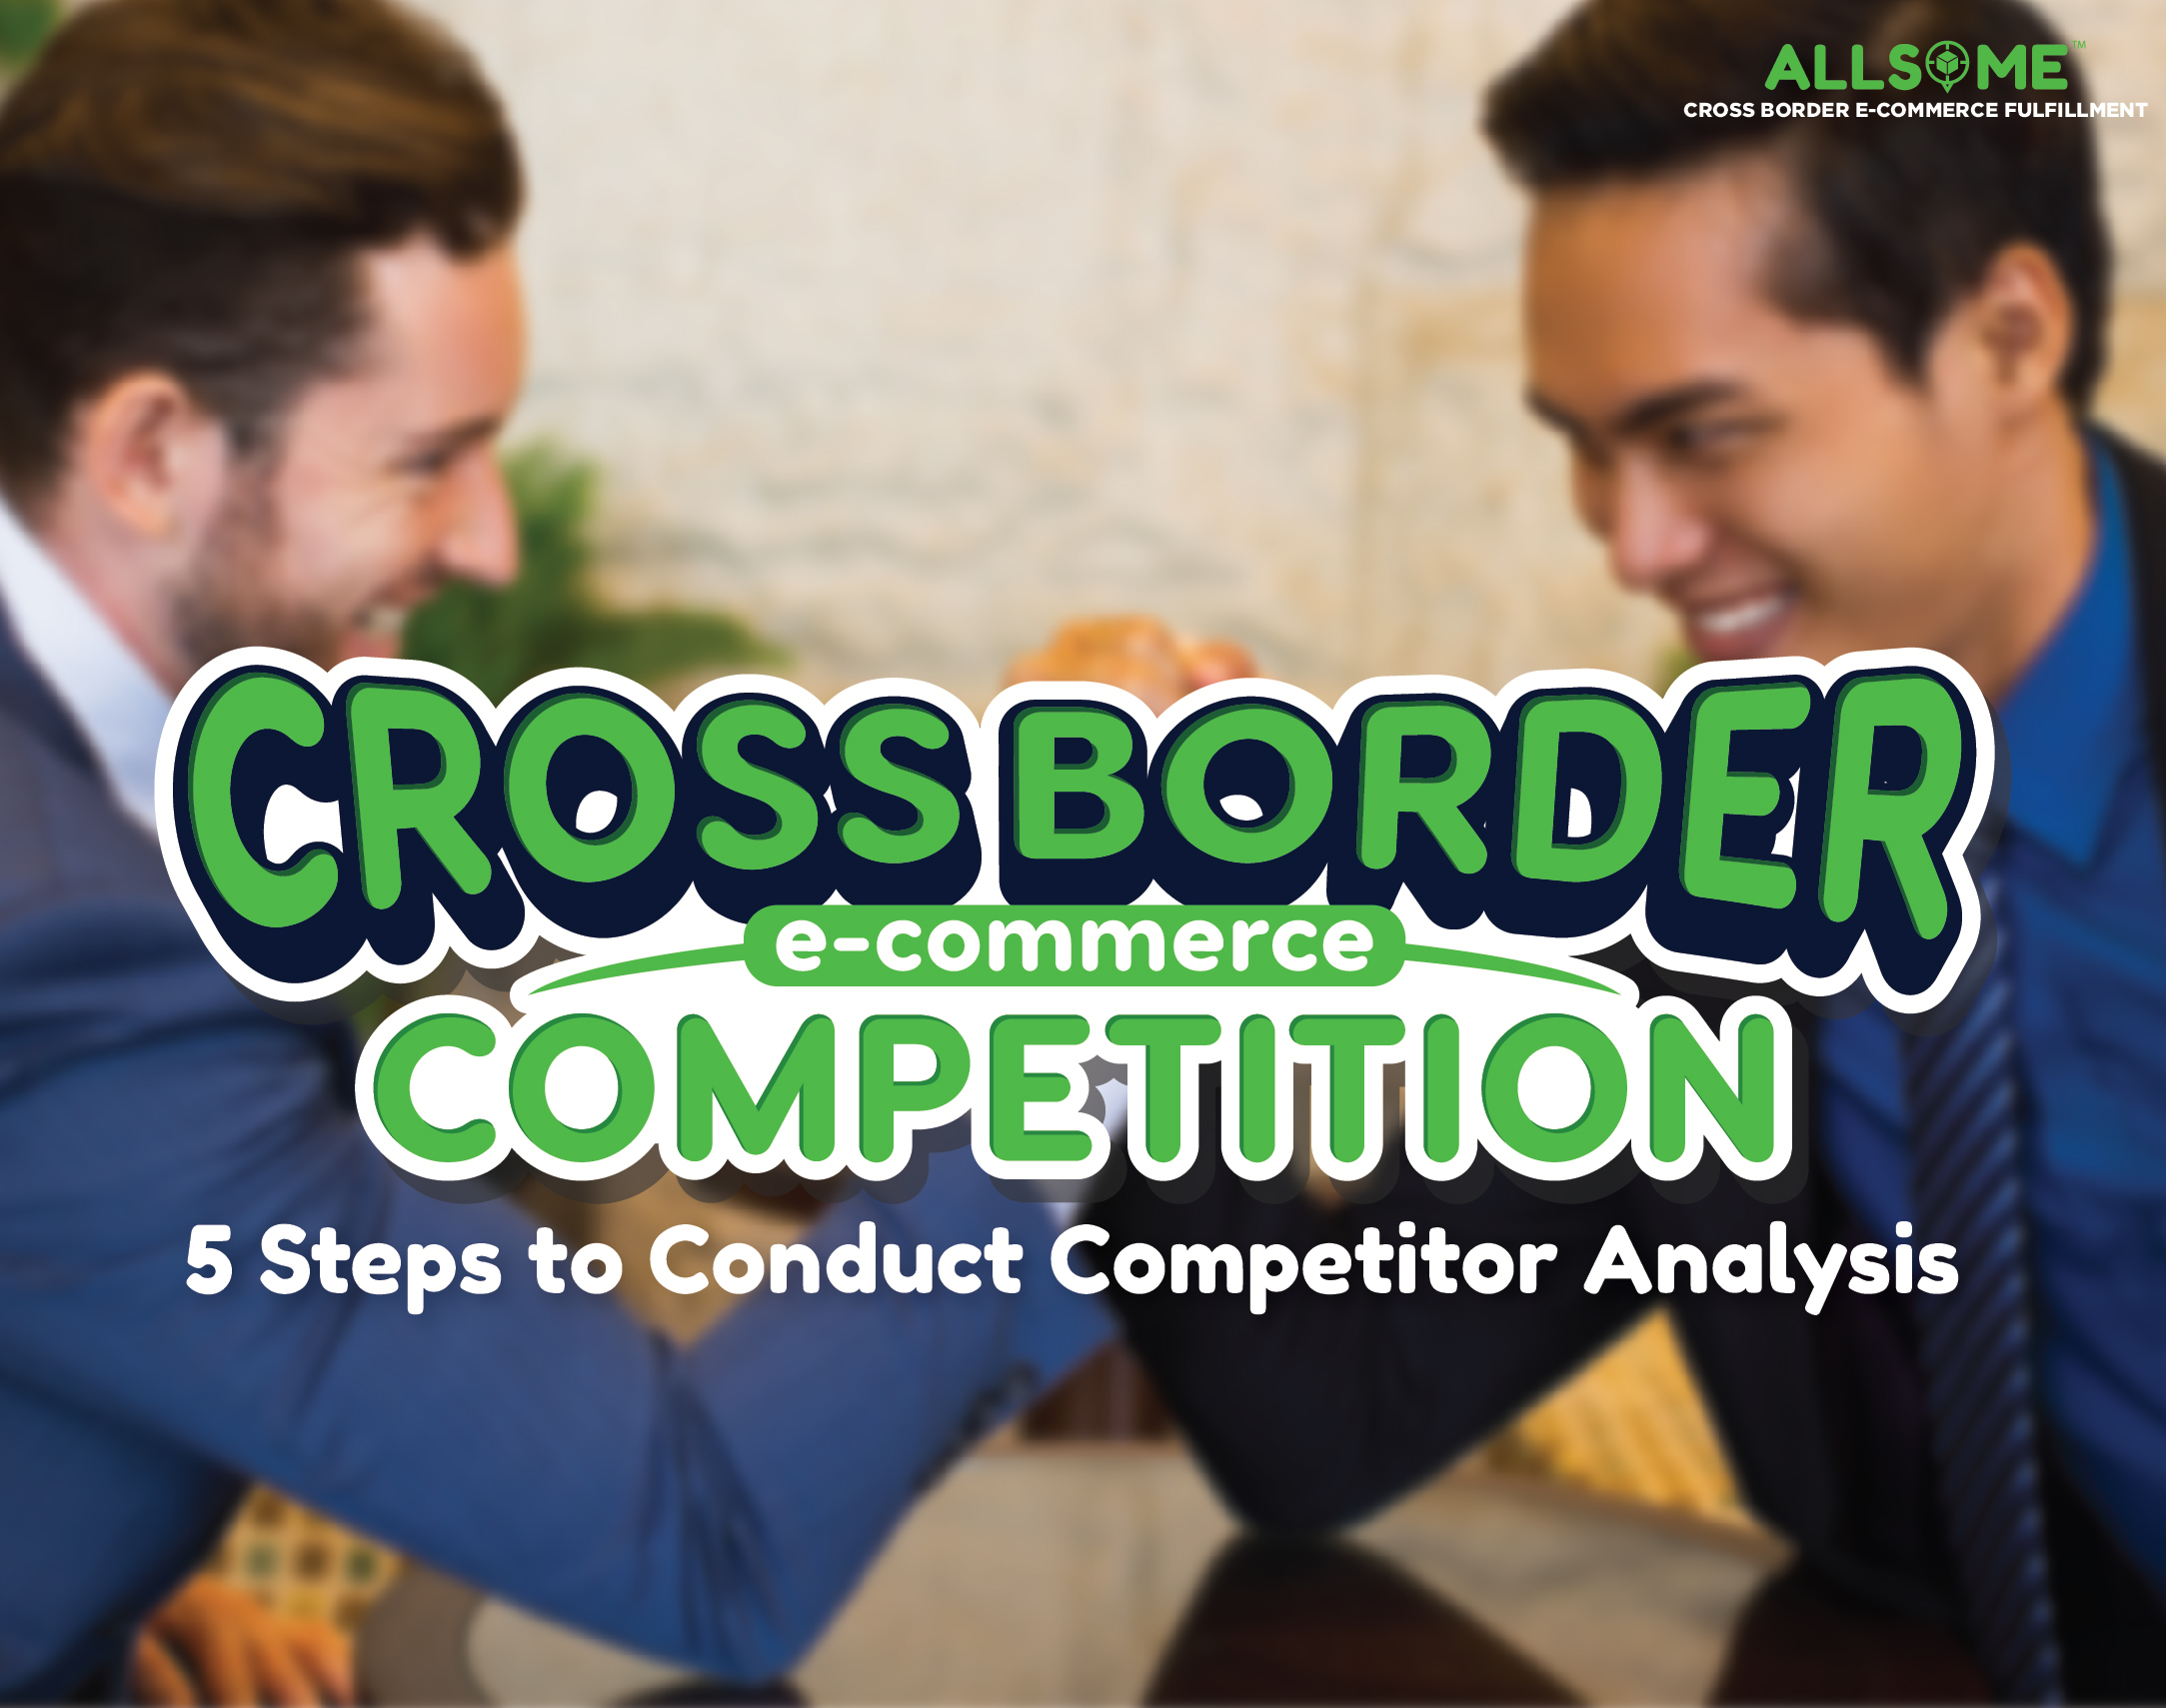 Cross Border E-Commerce Competition: 5 Steps to Conduct Competitor Analysis